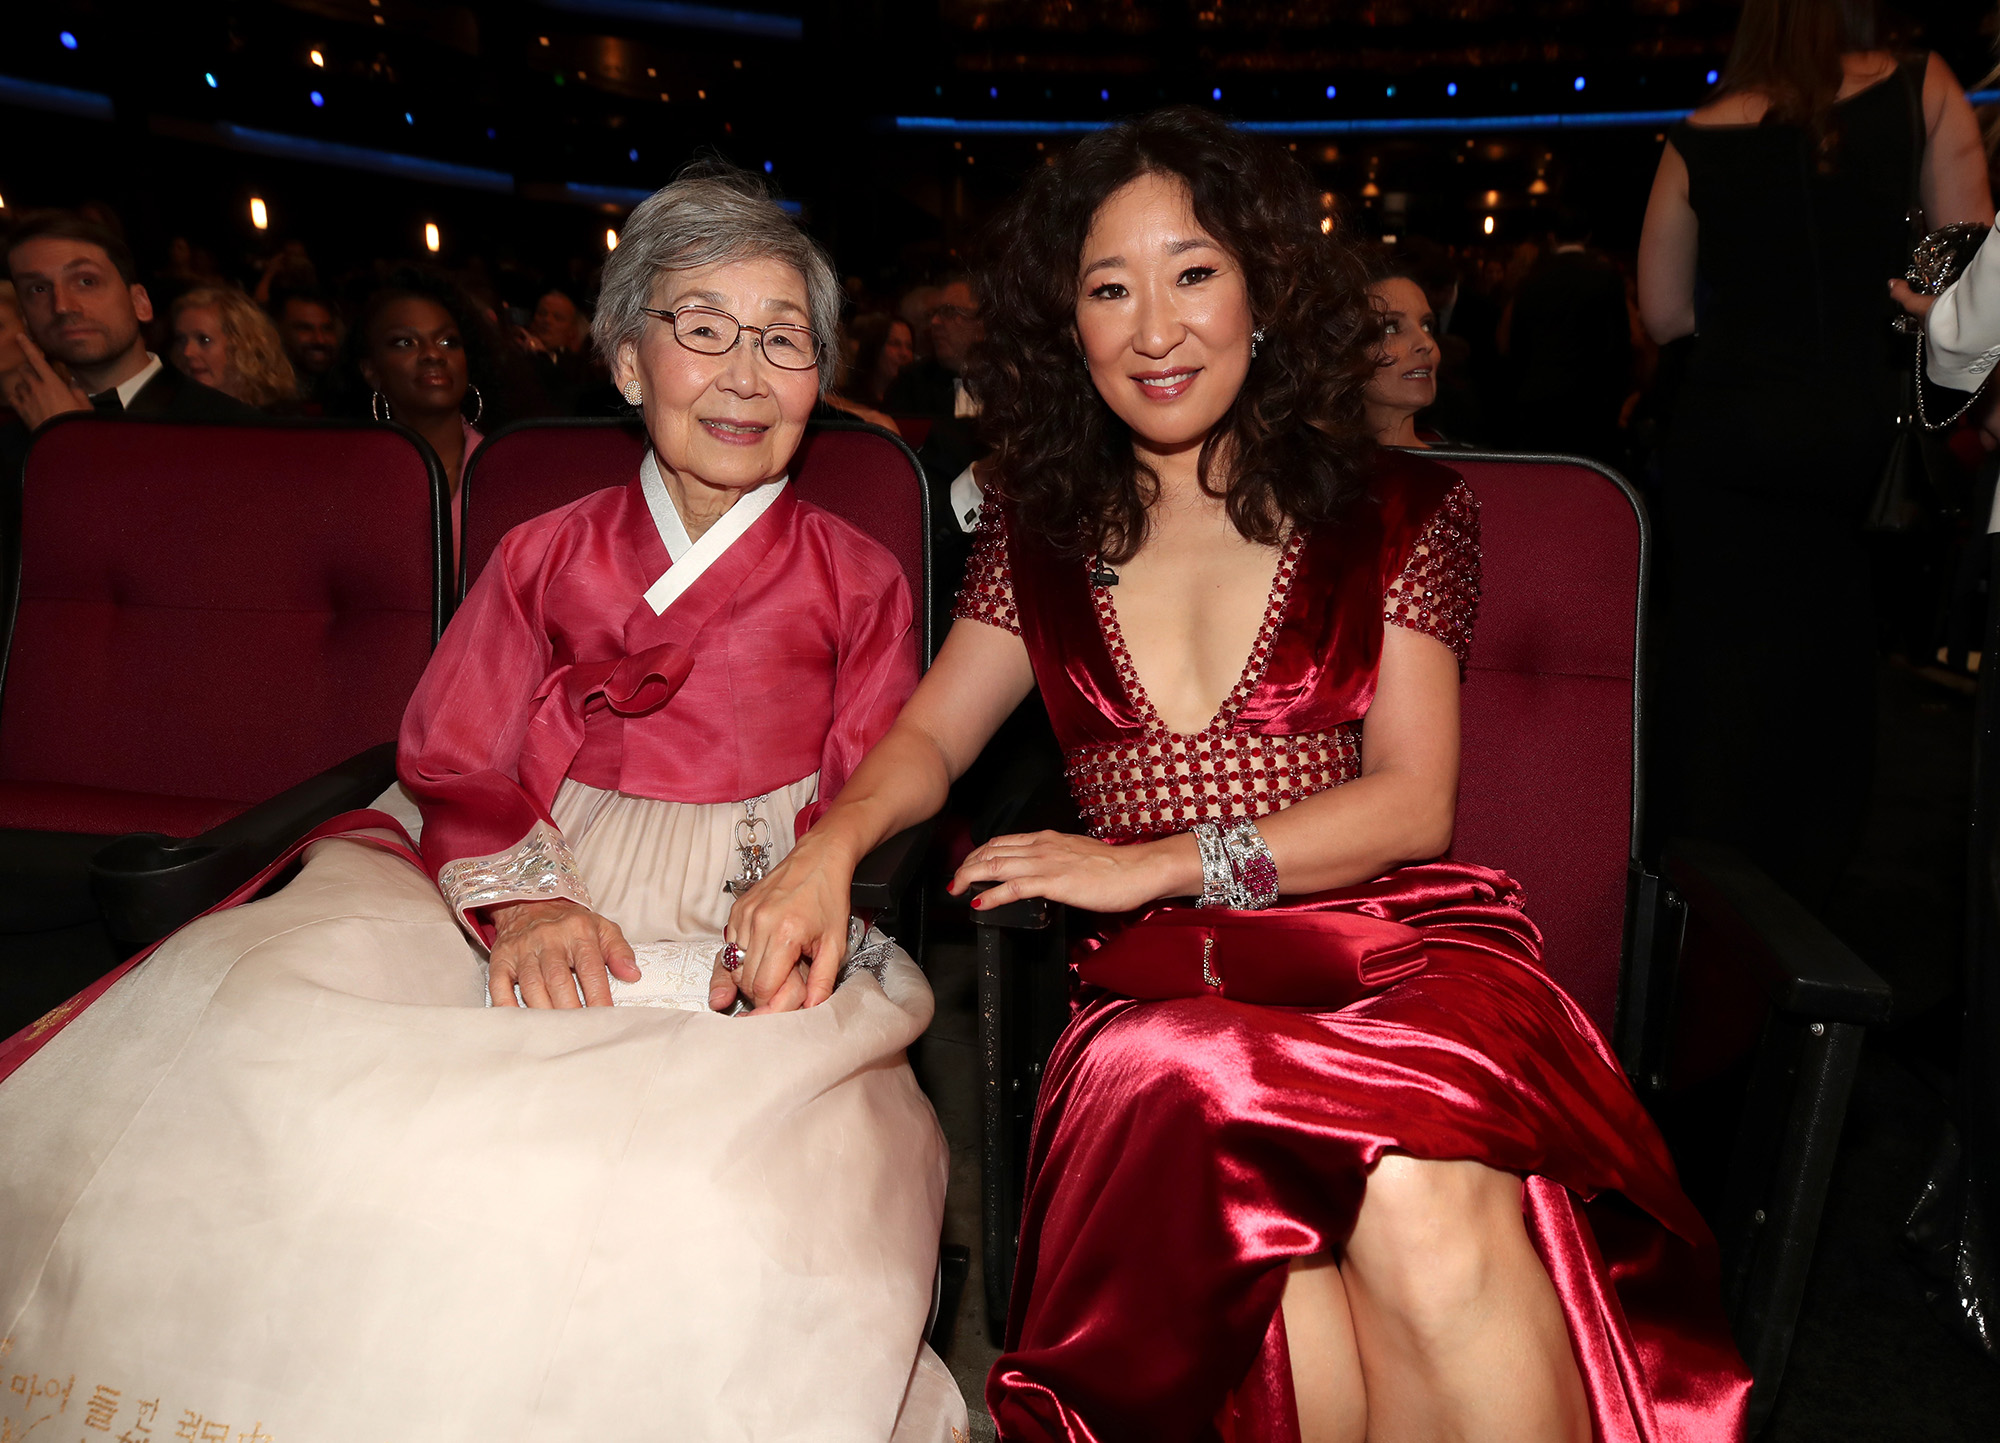 LOS ANGELES, CA - SEPTEMBER 17:  70th ANNUAL PRIMETIME EMMY AWARDS -- Pictured: (l-r) Jeon Young-nam and Sandra Oh arrives to the 70th Annual Primetime Emmy Awards held at the Microsoft Theater on September 17, 2018.  NUP_184221  (Photo by Christopher Polk/NBC/NBCU Photo Bank via Getty Images)